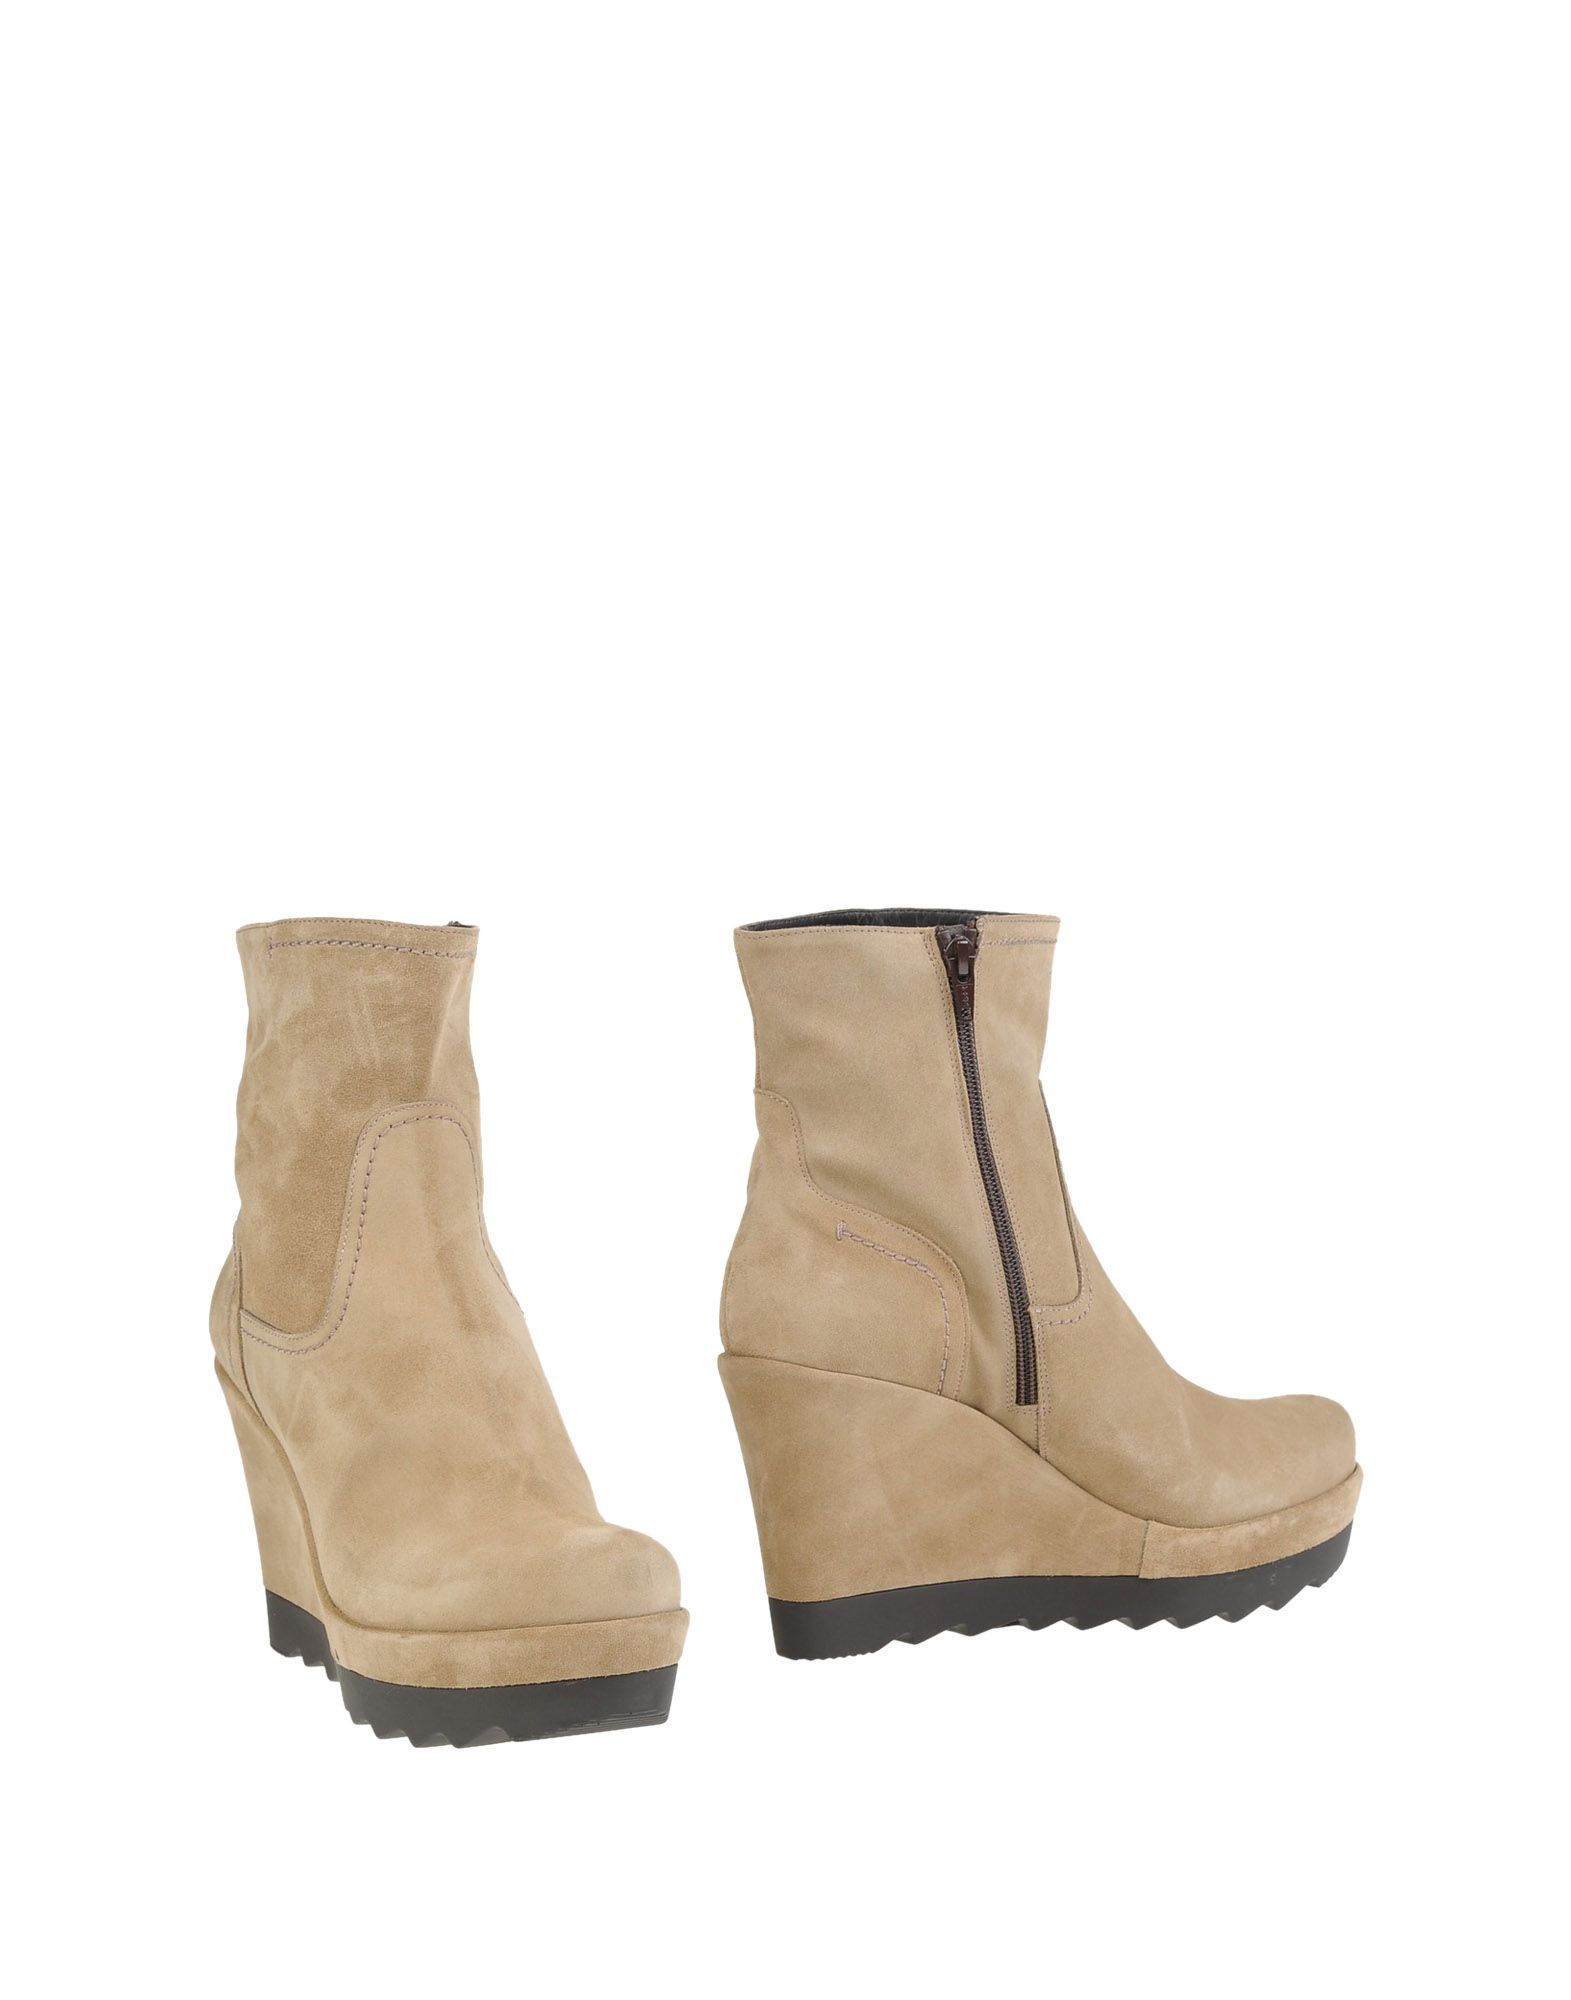 5490b604204 Pons Quintana Ankle Boot - Women Pons Quintana Ankle Boots online on YOOX  United States - 44877323KT